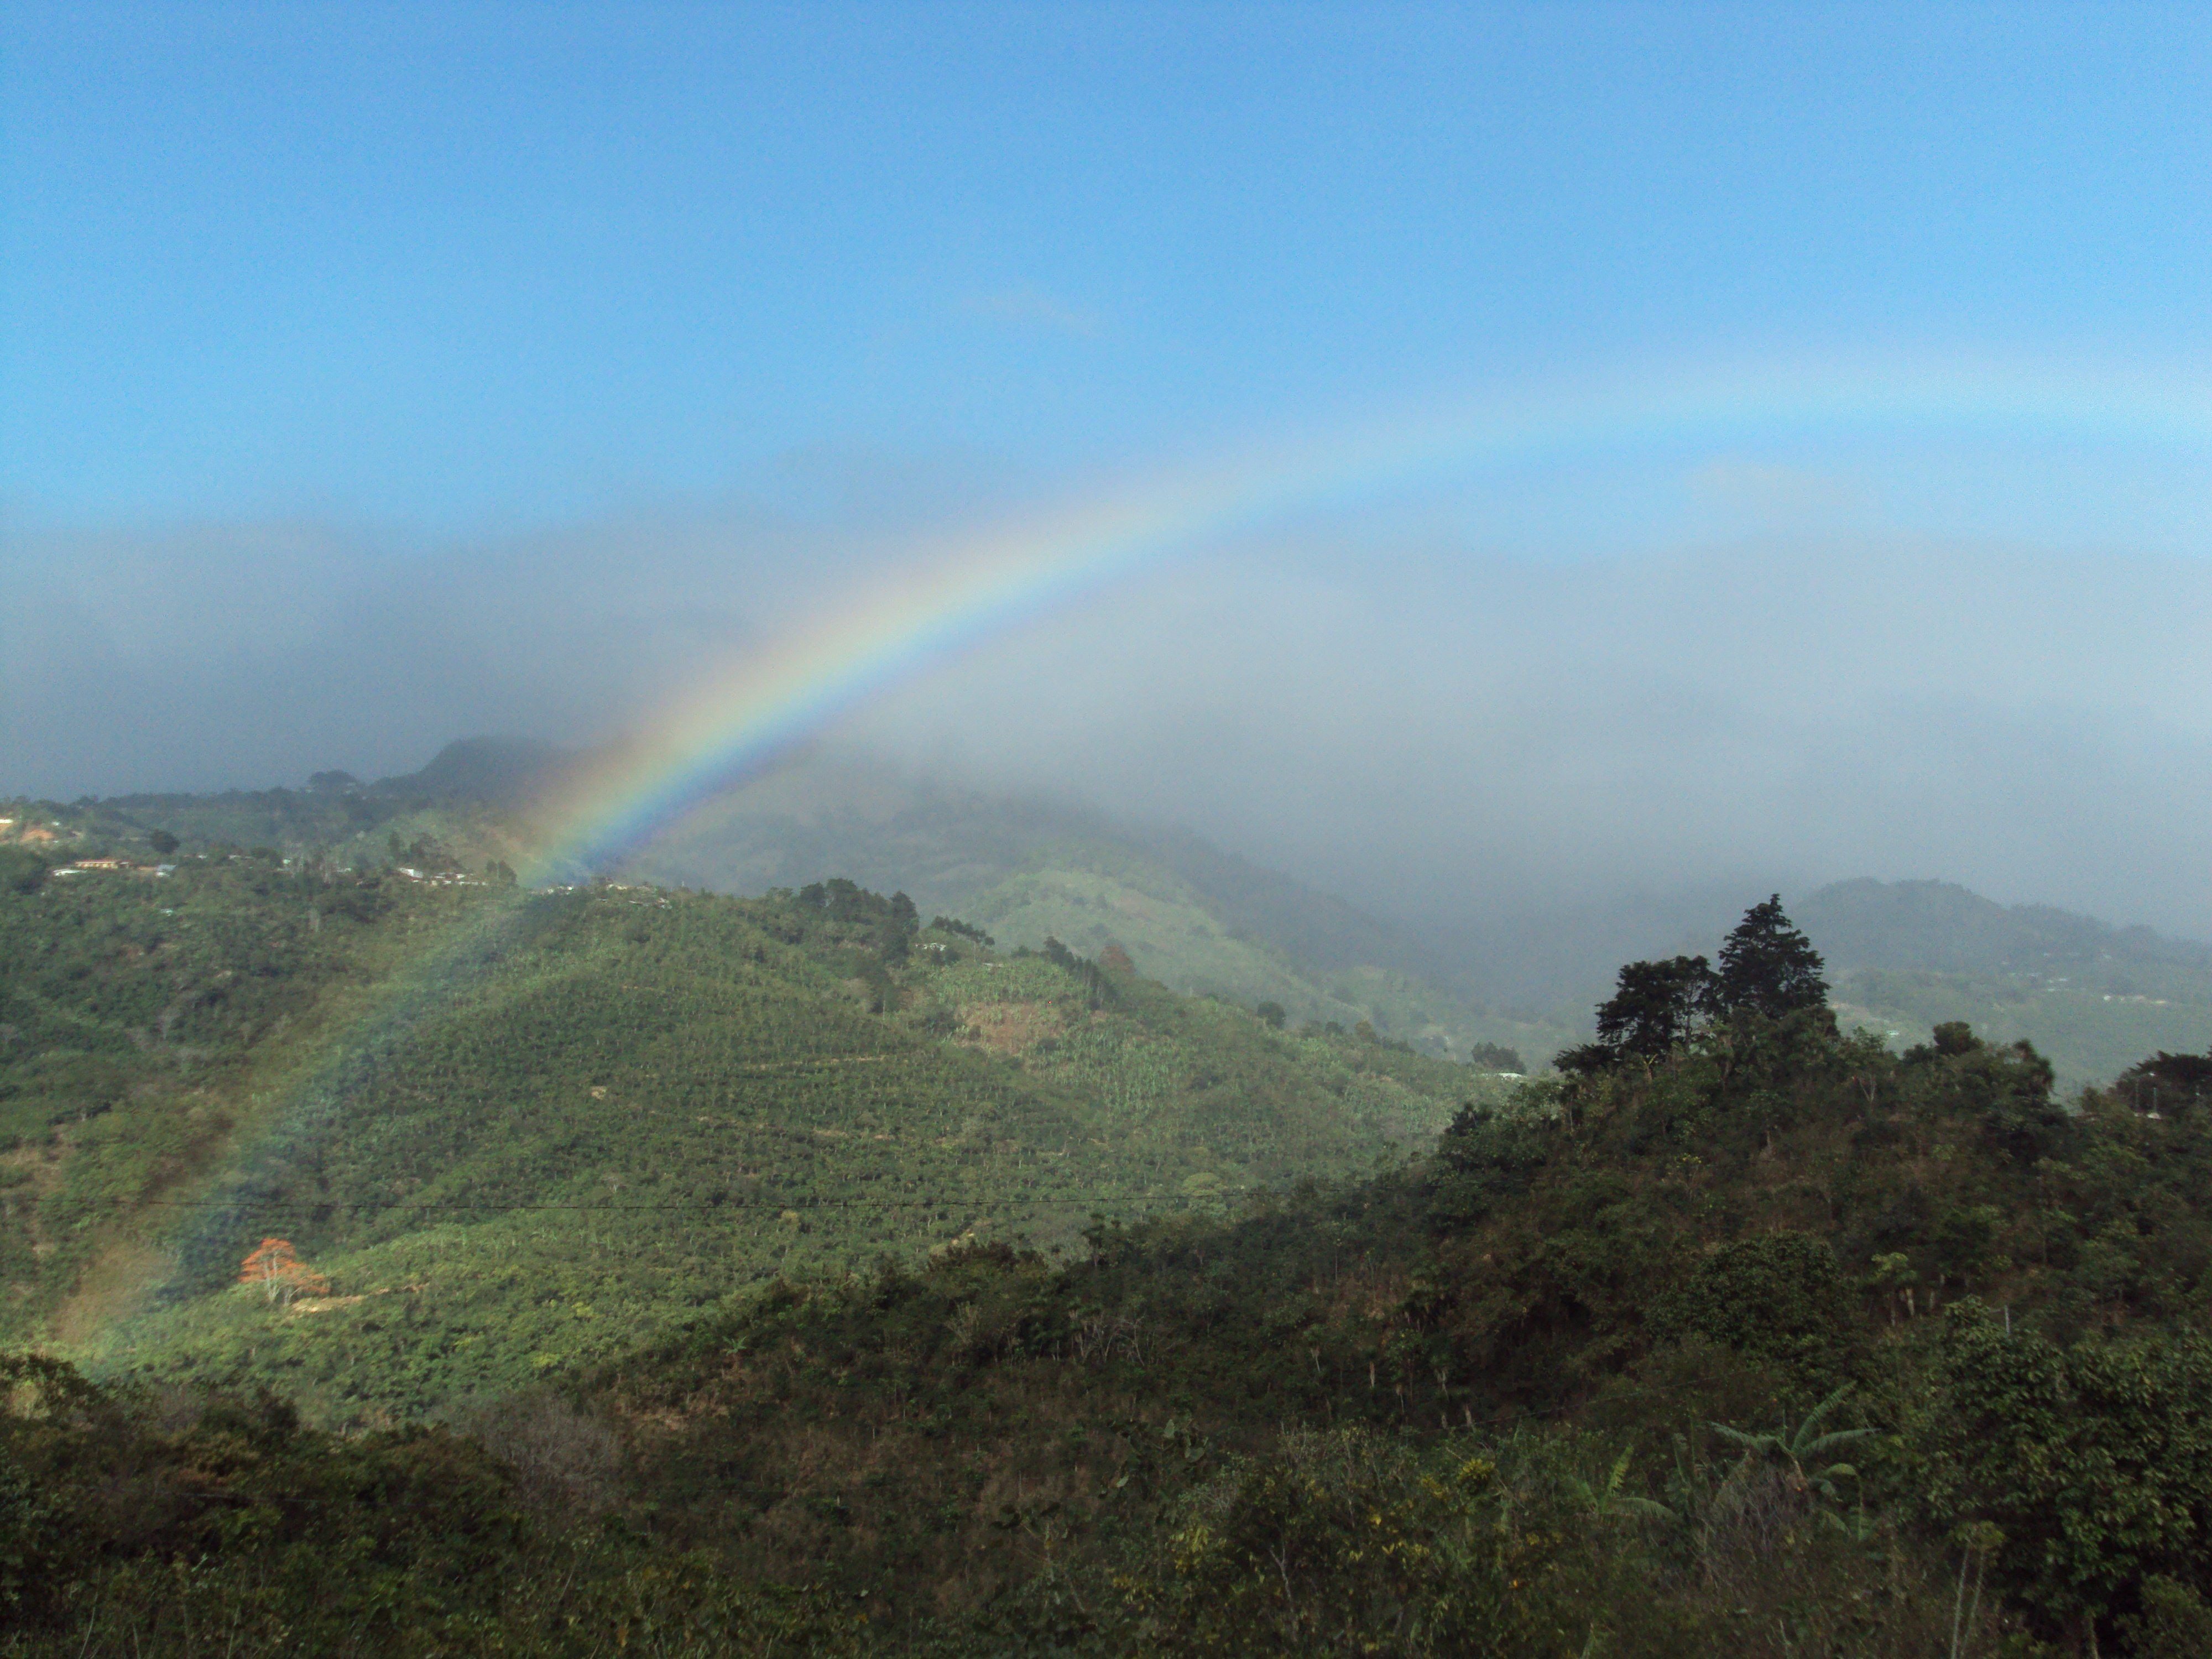 One of the many beautiful mountain views in Costa Rica.